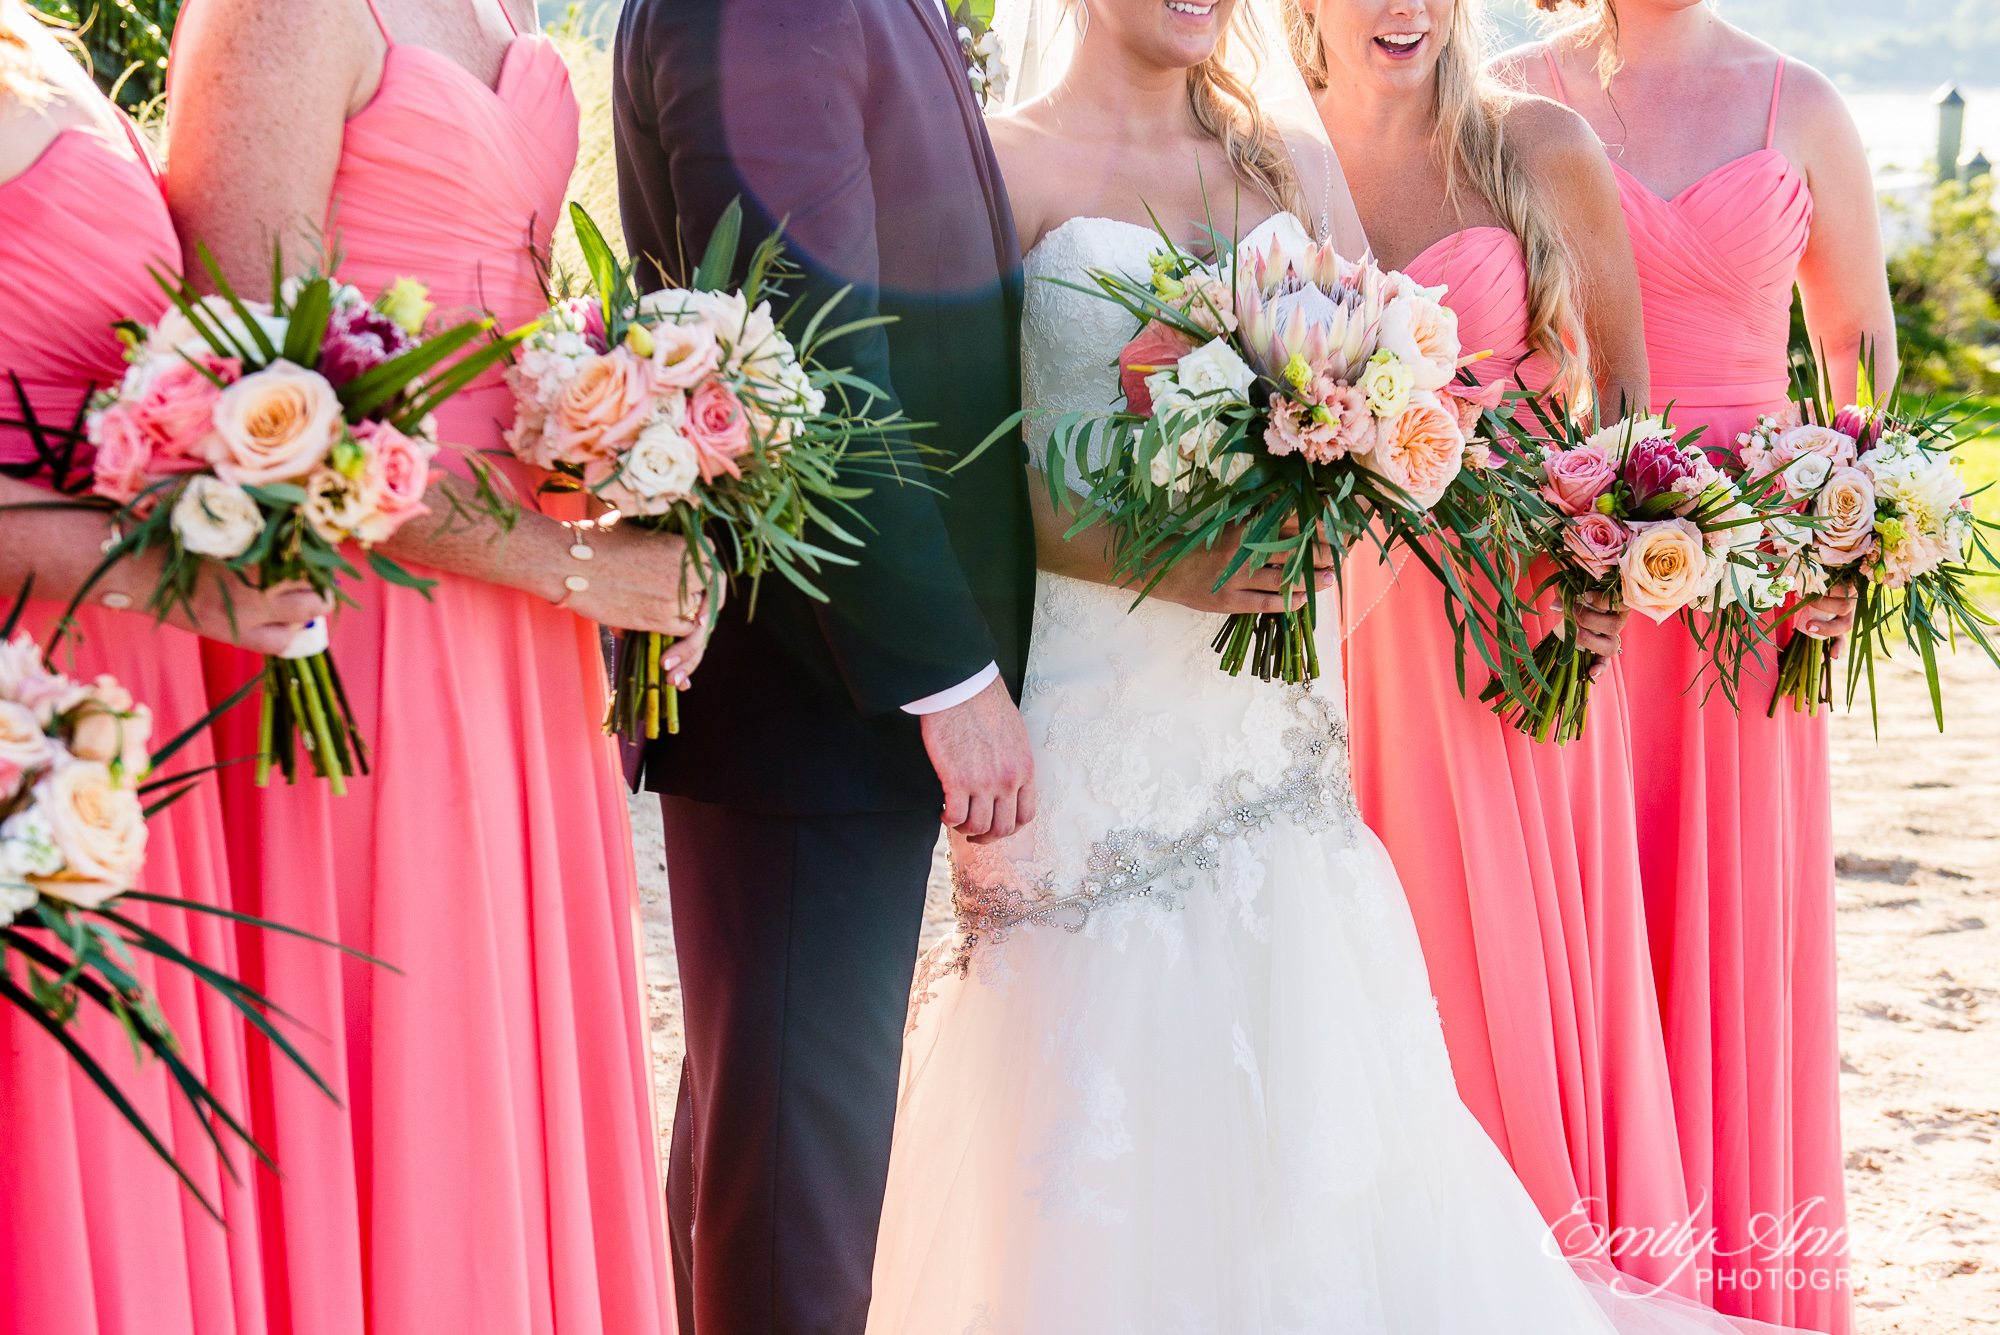 Details of the tropical flower bouquets and coral bridesmaids dresses at Herrington on the Bay in North Beach, Maryland